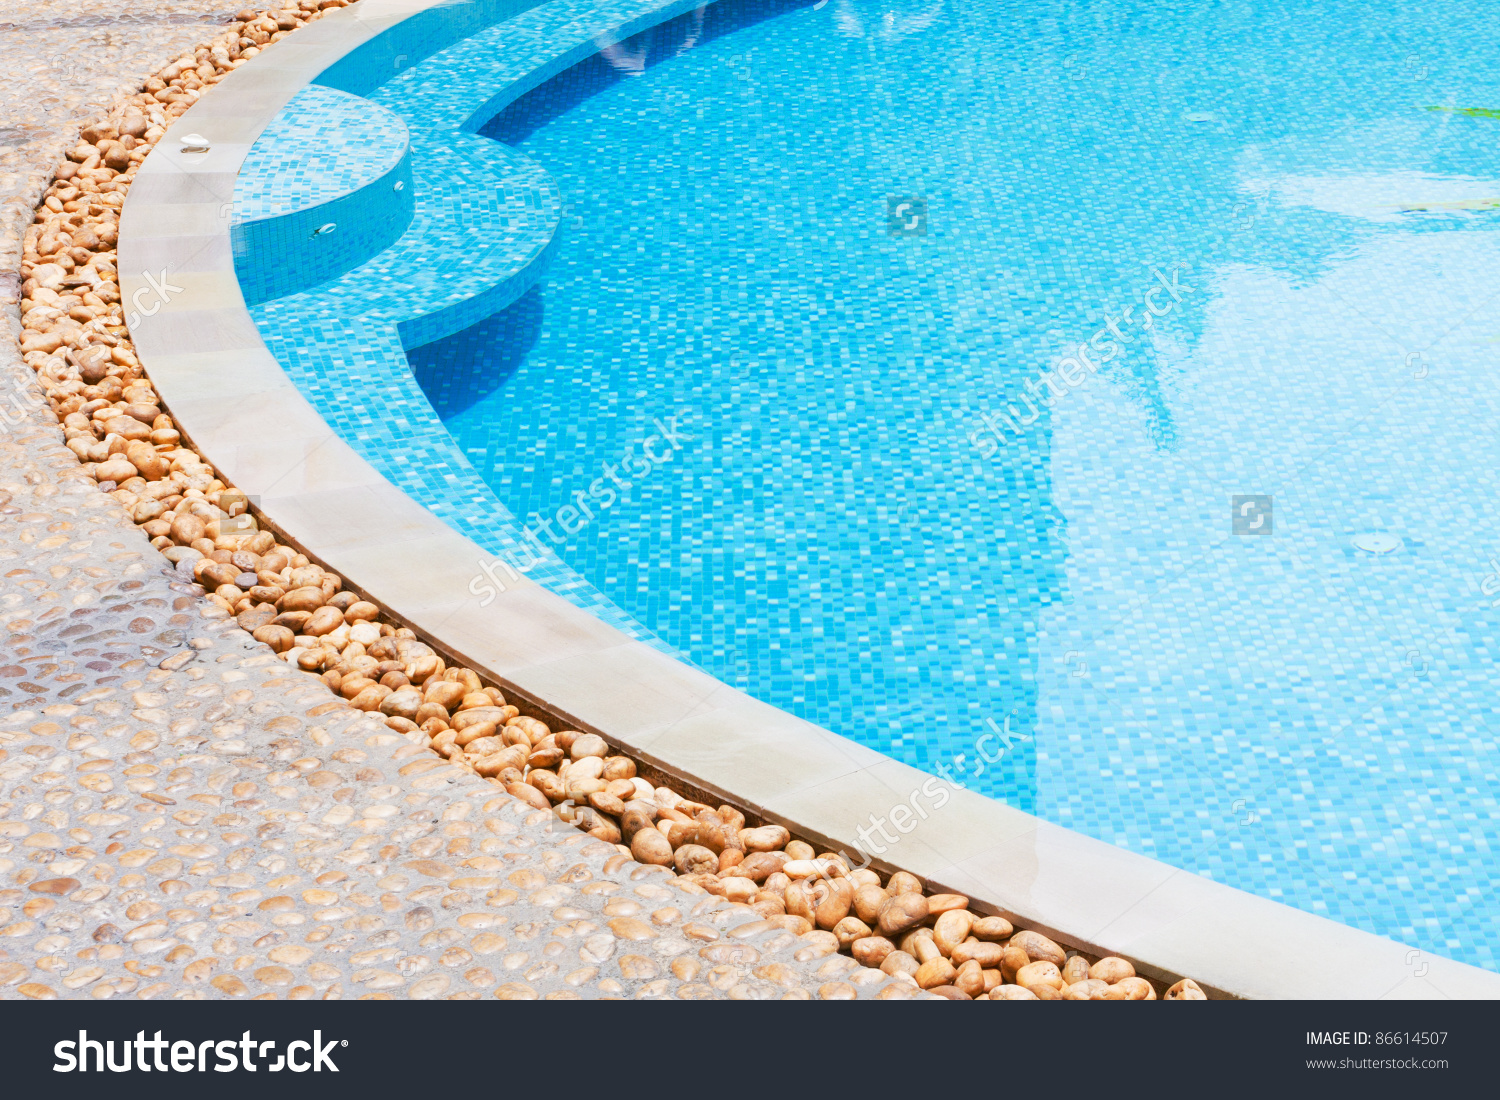 Outdoor Shallow Water Swimming Pool Stock Photo 86614507.